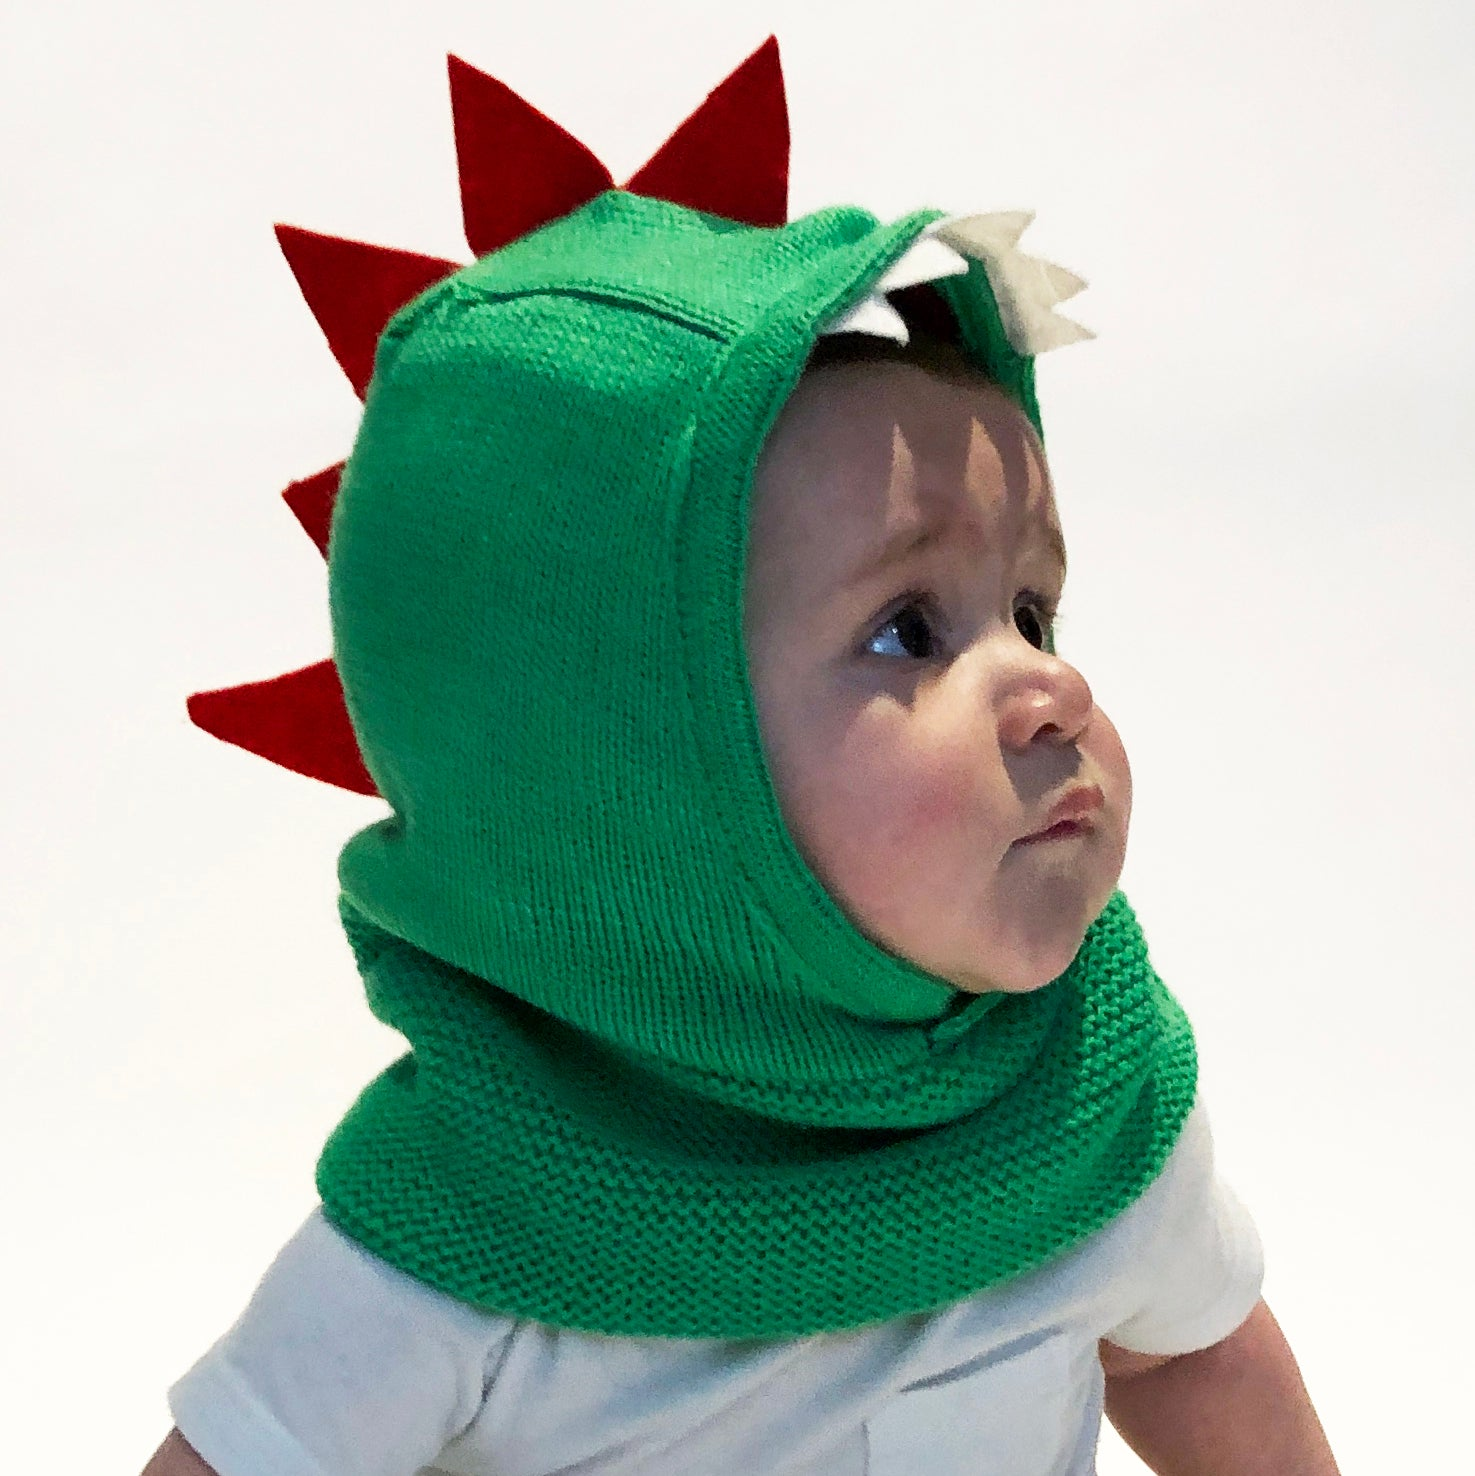 ZOOCCHINI Baby/Todder Knit Balaclava Hat - Devin the Dinosaur